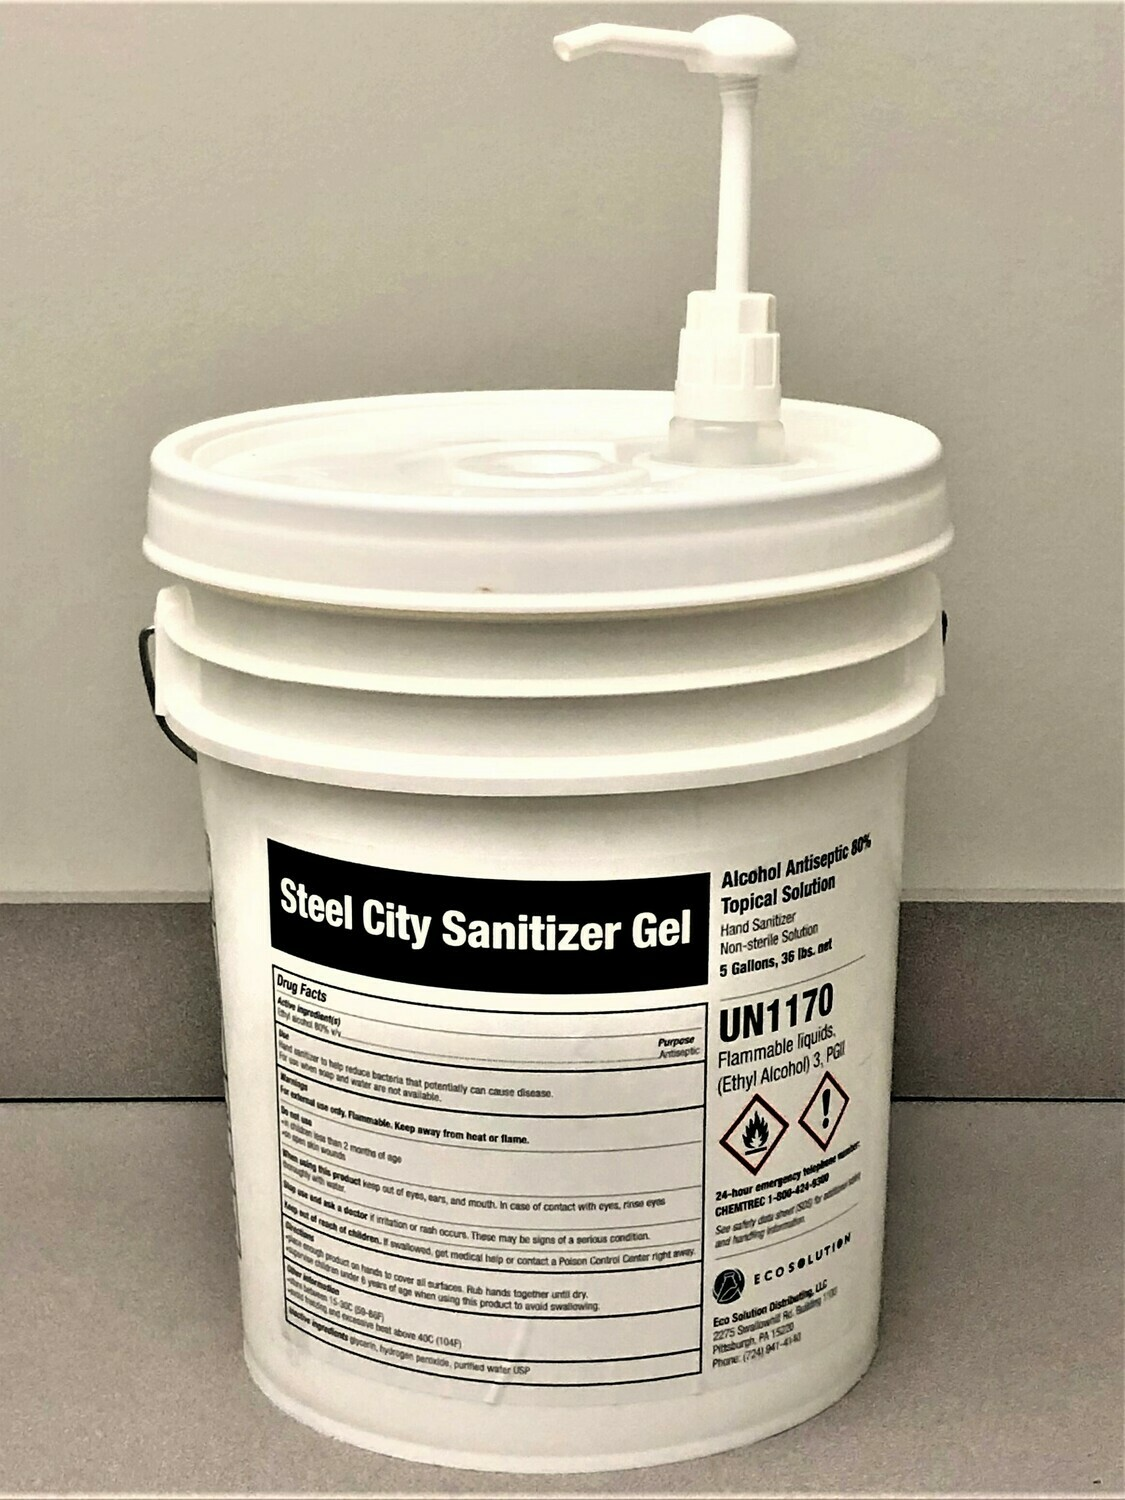 Steel City Sanitizer Gel - 5 Gallon UN Pail / Dispenser Station